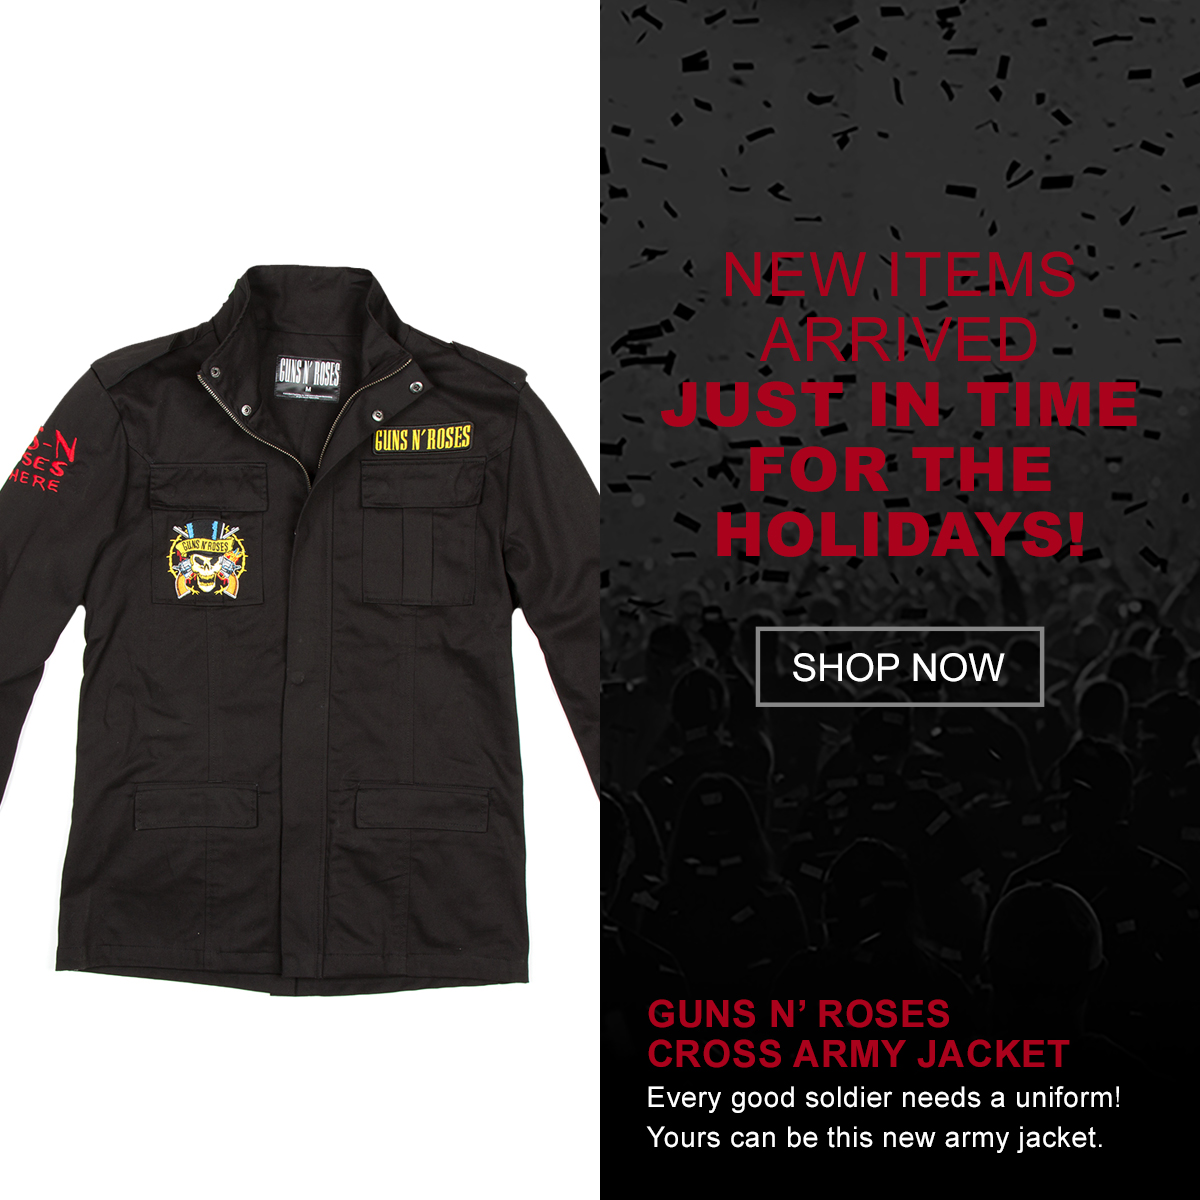 Guns N' Roses Army Jacket. Shop.